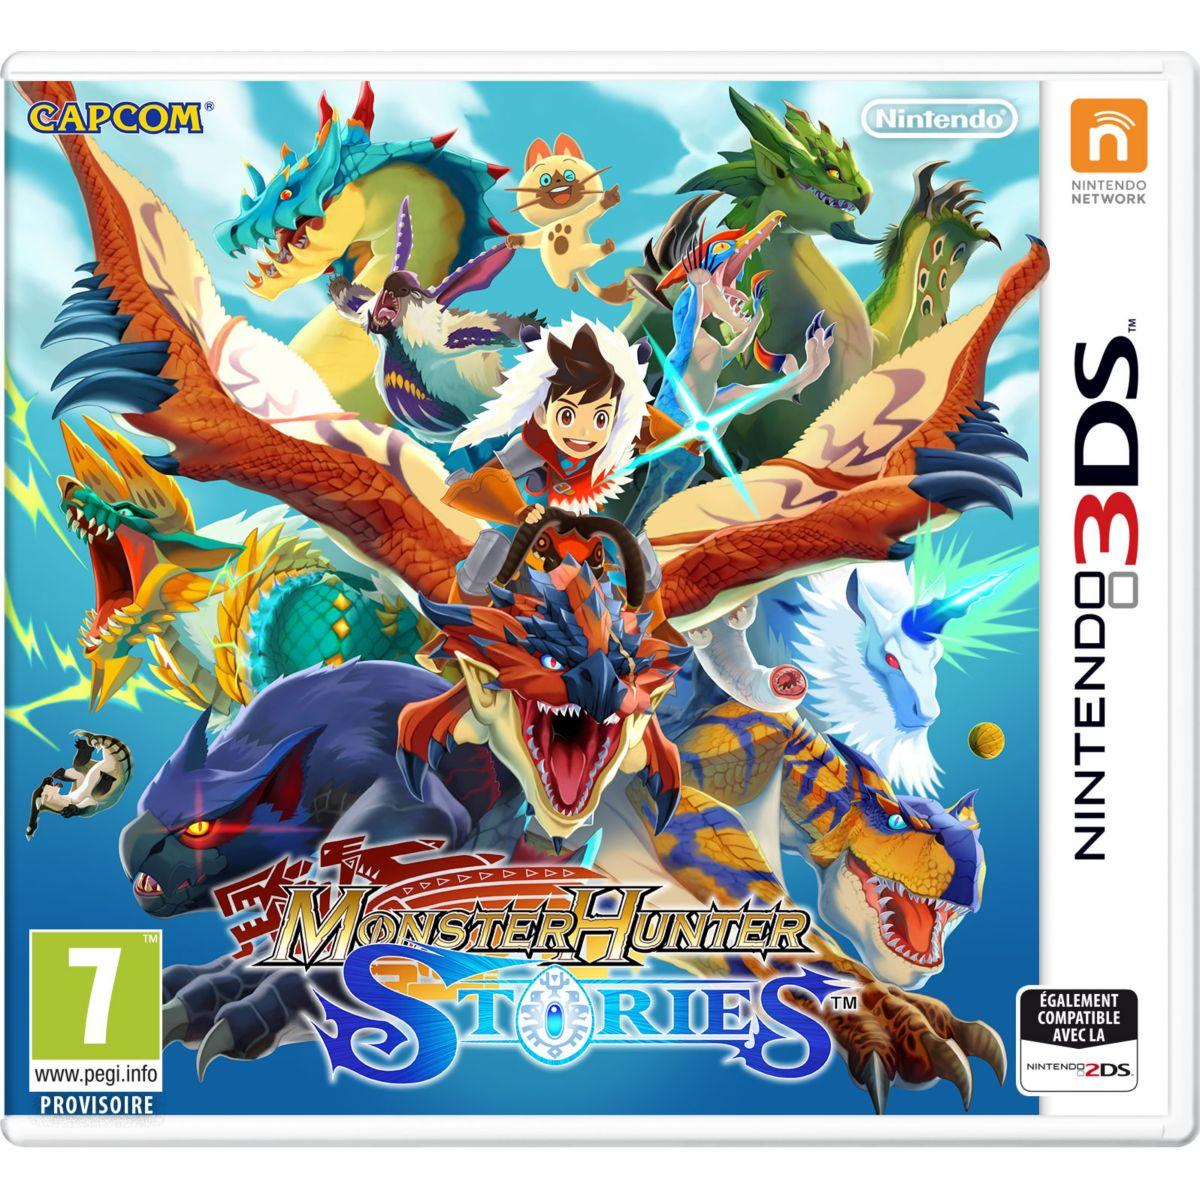 Jeu 3ds nintendo monster hunter stories - 2% de remise immédiate avec le code : cool2 (photo)